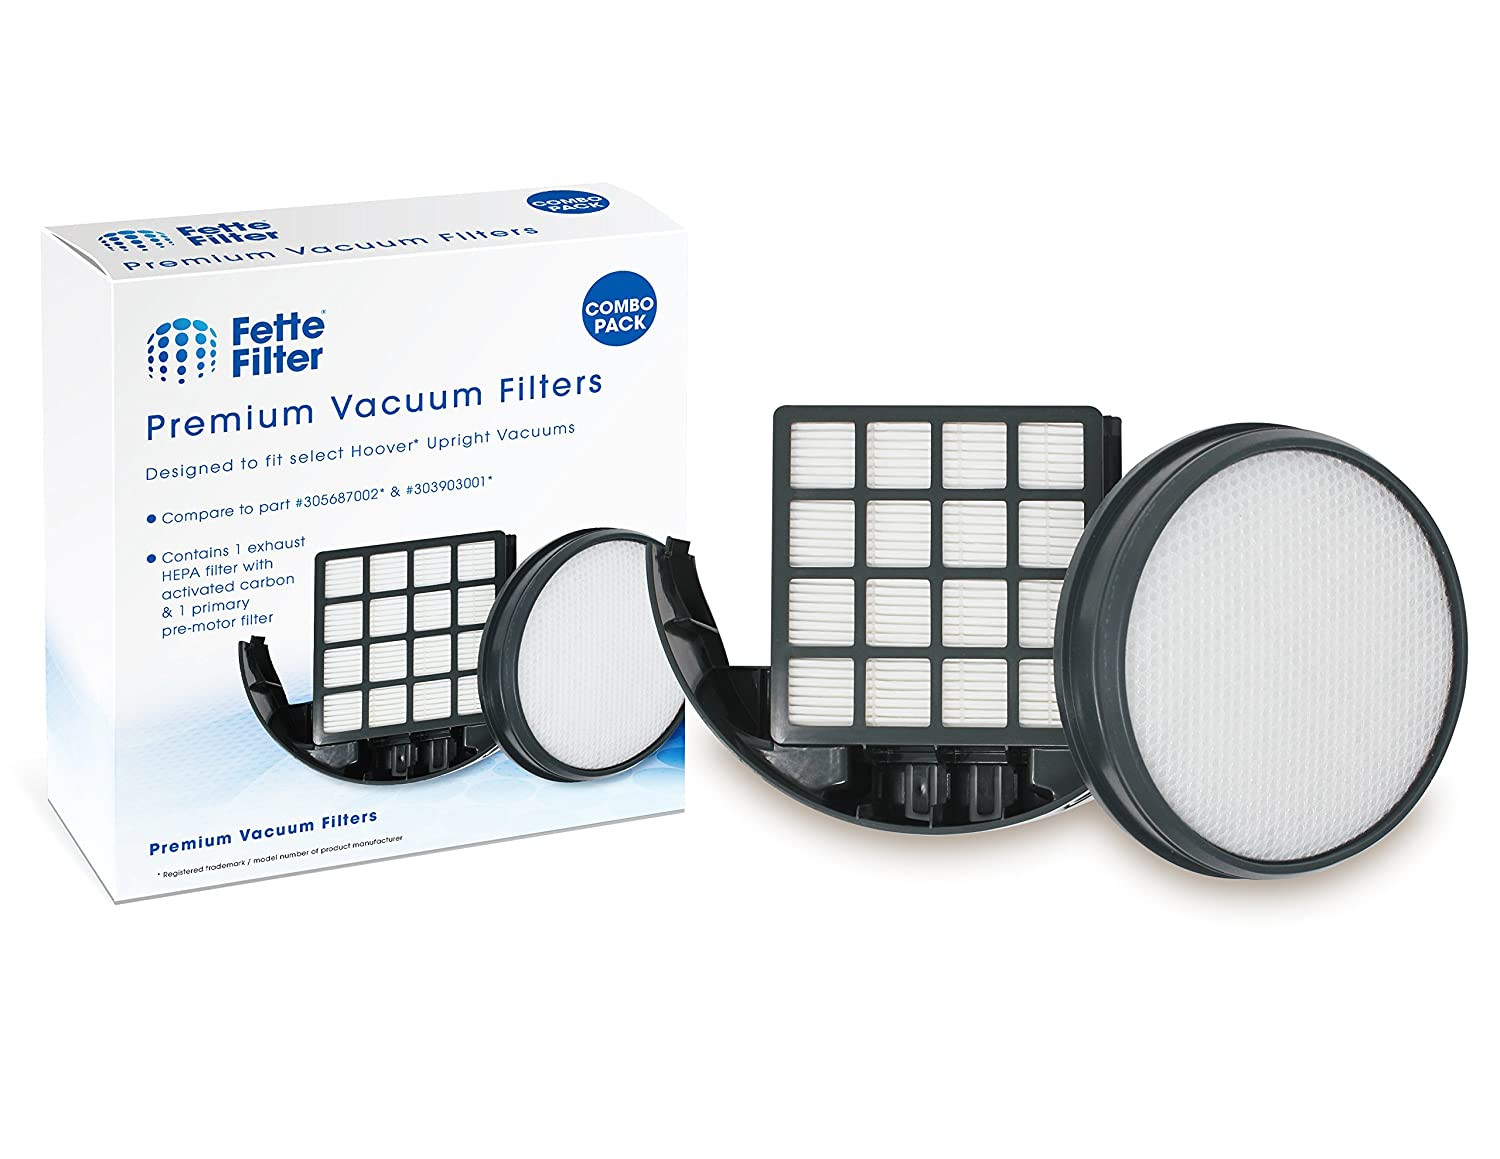 Fette Filter - Upright Vacuum Filter Kit Compatible with Hoover WindTunnel 3 Pro Pet. Compare to Part # 303903001 & 305687002. Combo Pack 81ZduSDR5GL